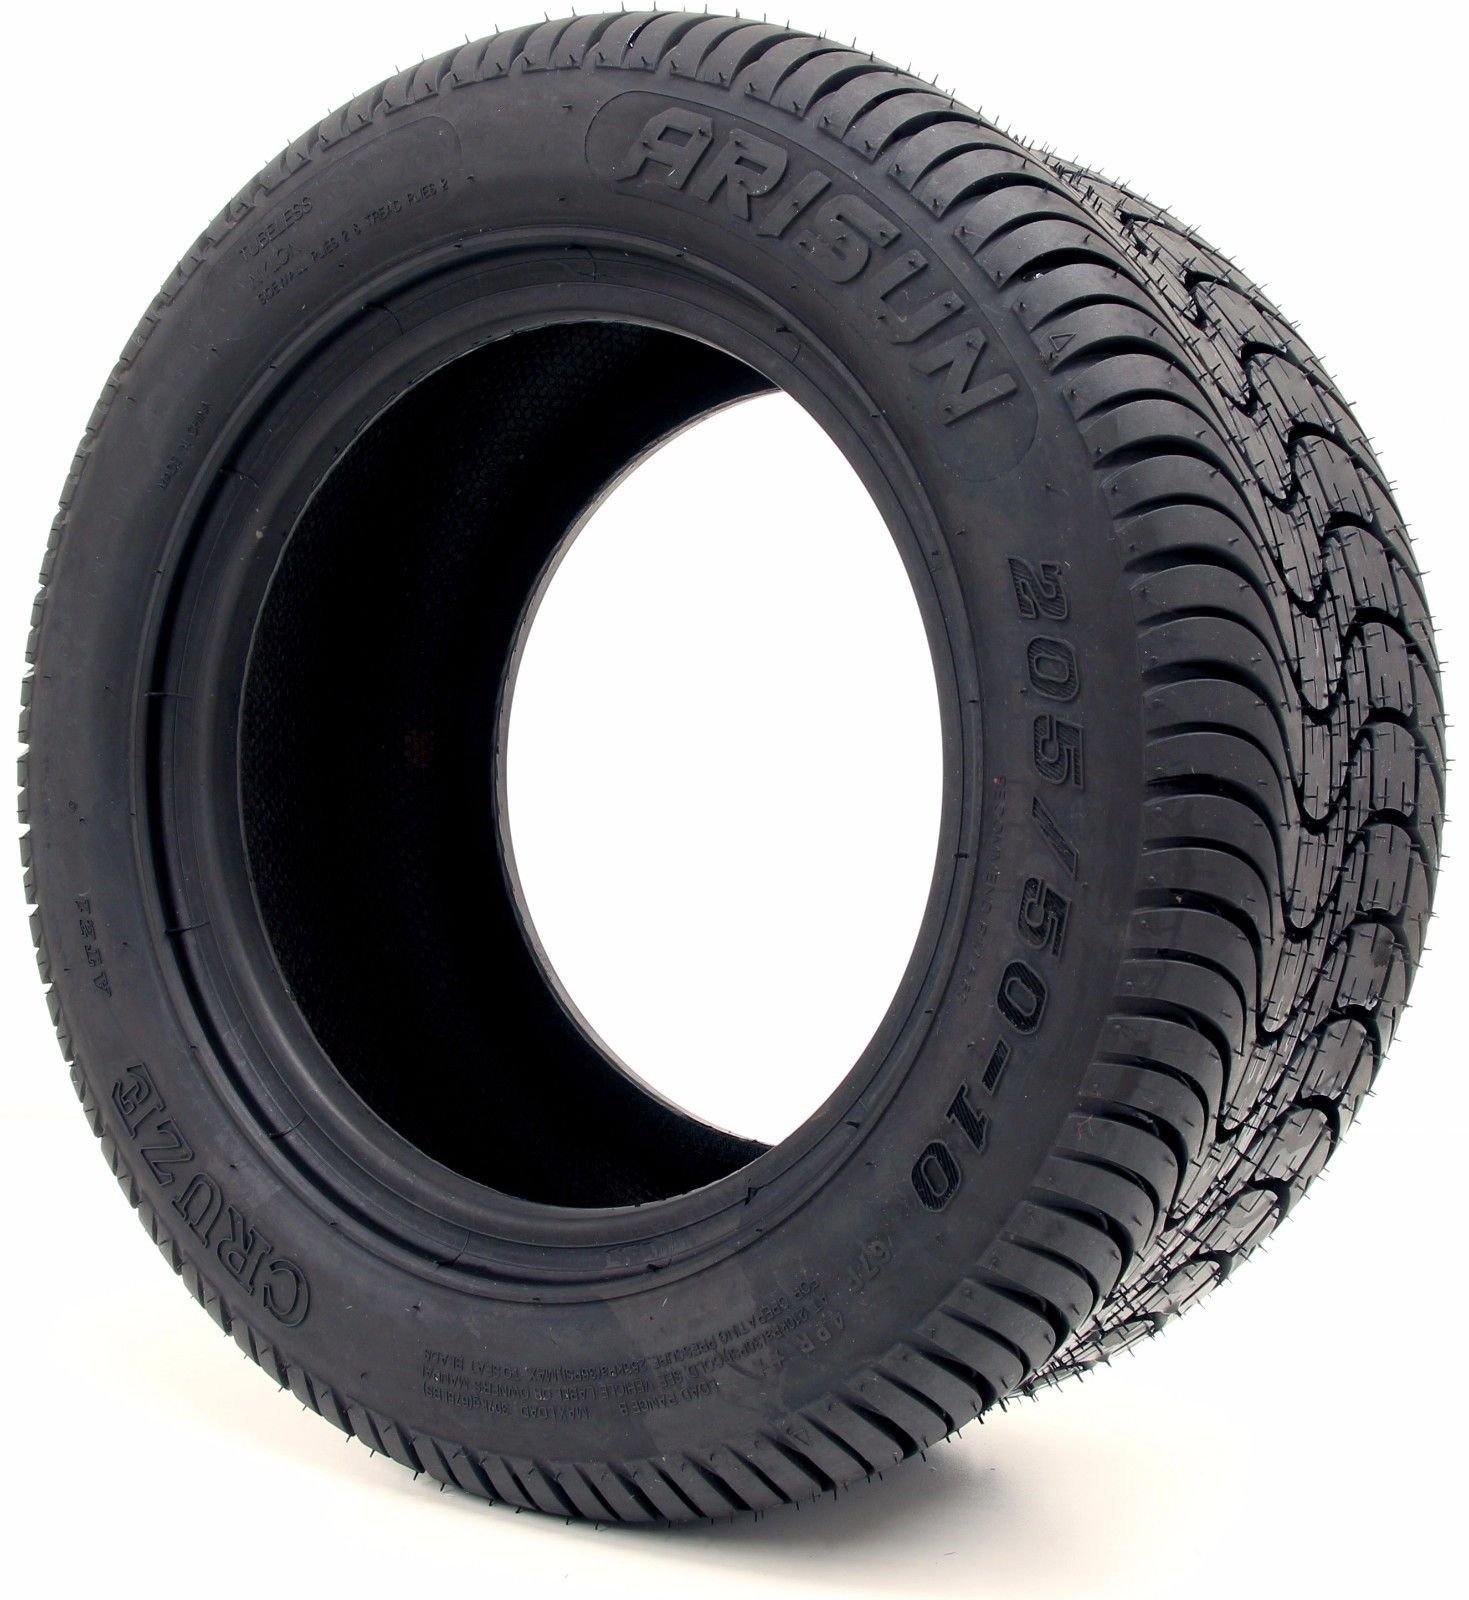 Arisun 205/50-10 DOT Street Tires for EZGO, Club Car, Yamaha Golf Carts (205/50-10, 1 Individual tire)